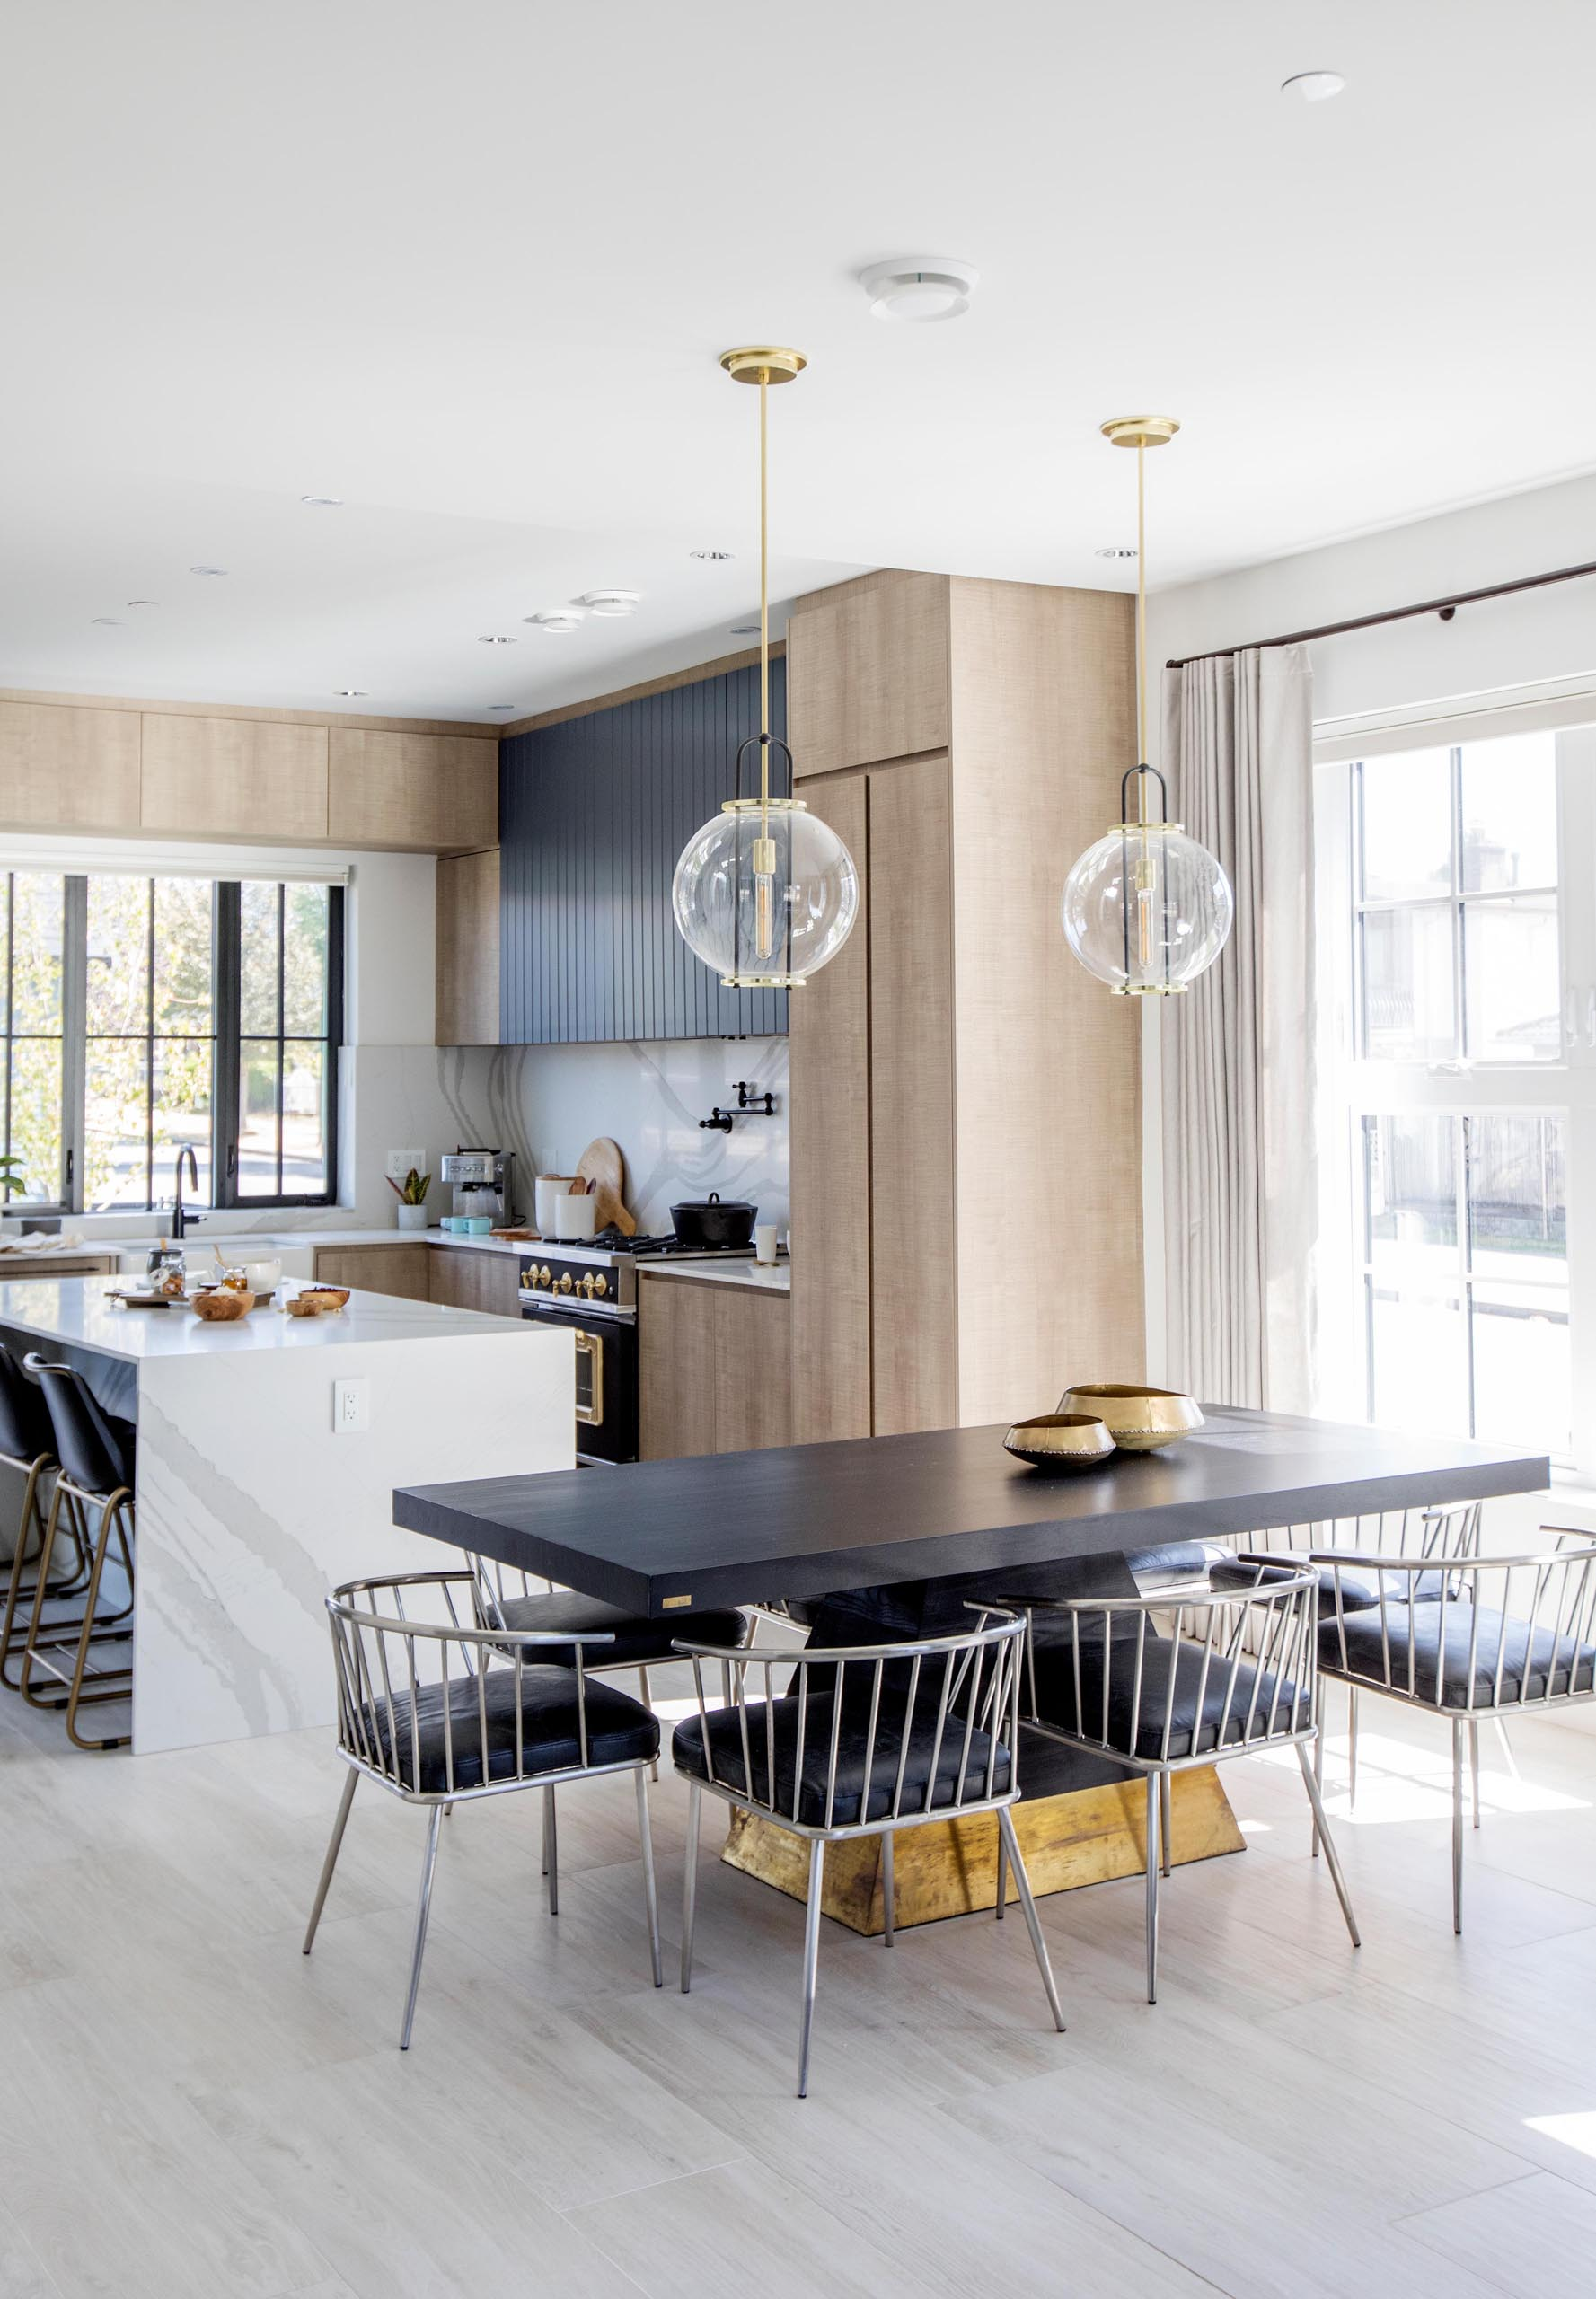 A black dining table with gold accents, is anchored in the open floor plan by two glass pendant lights.